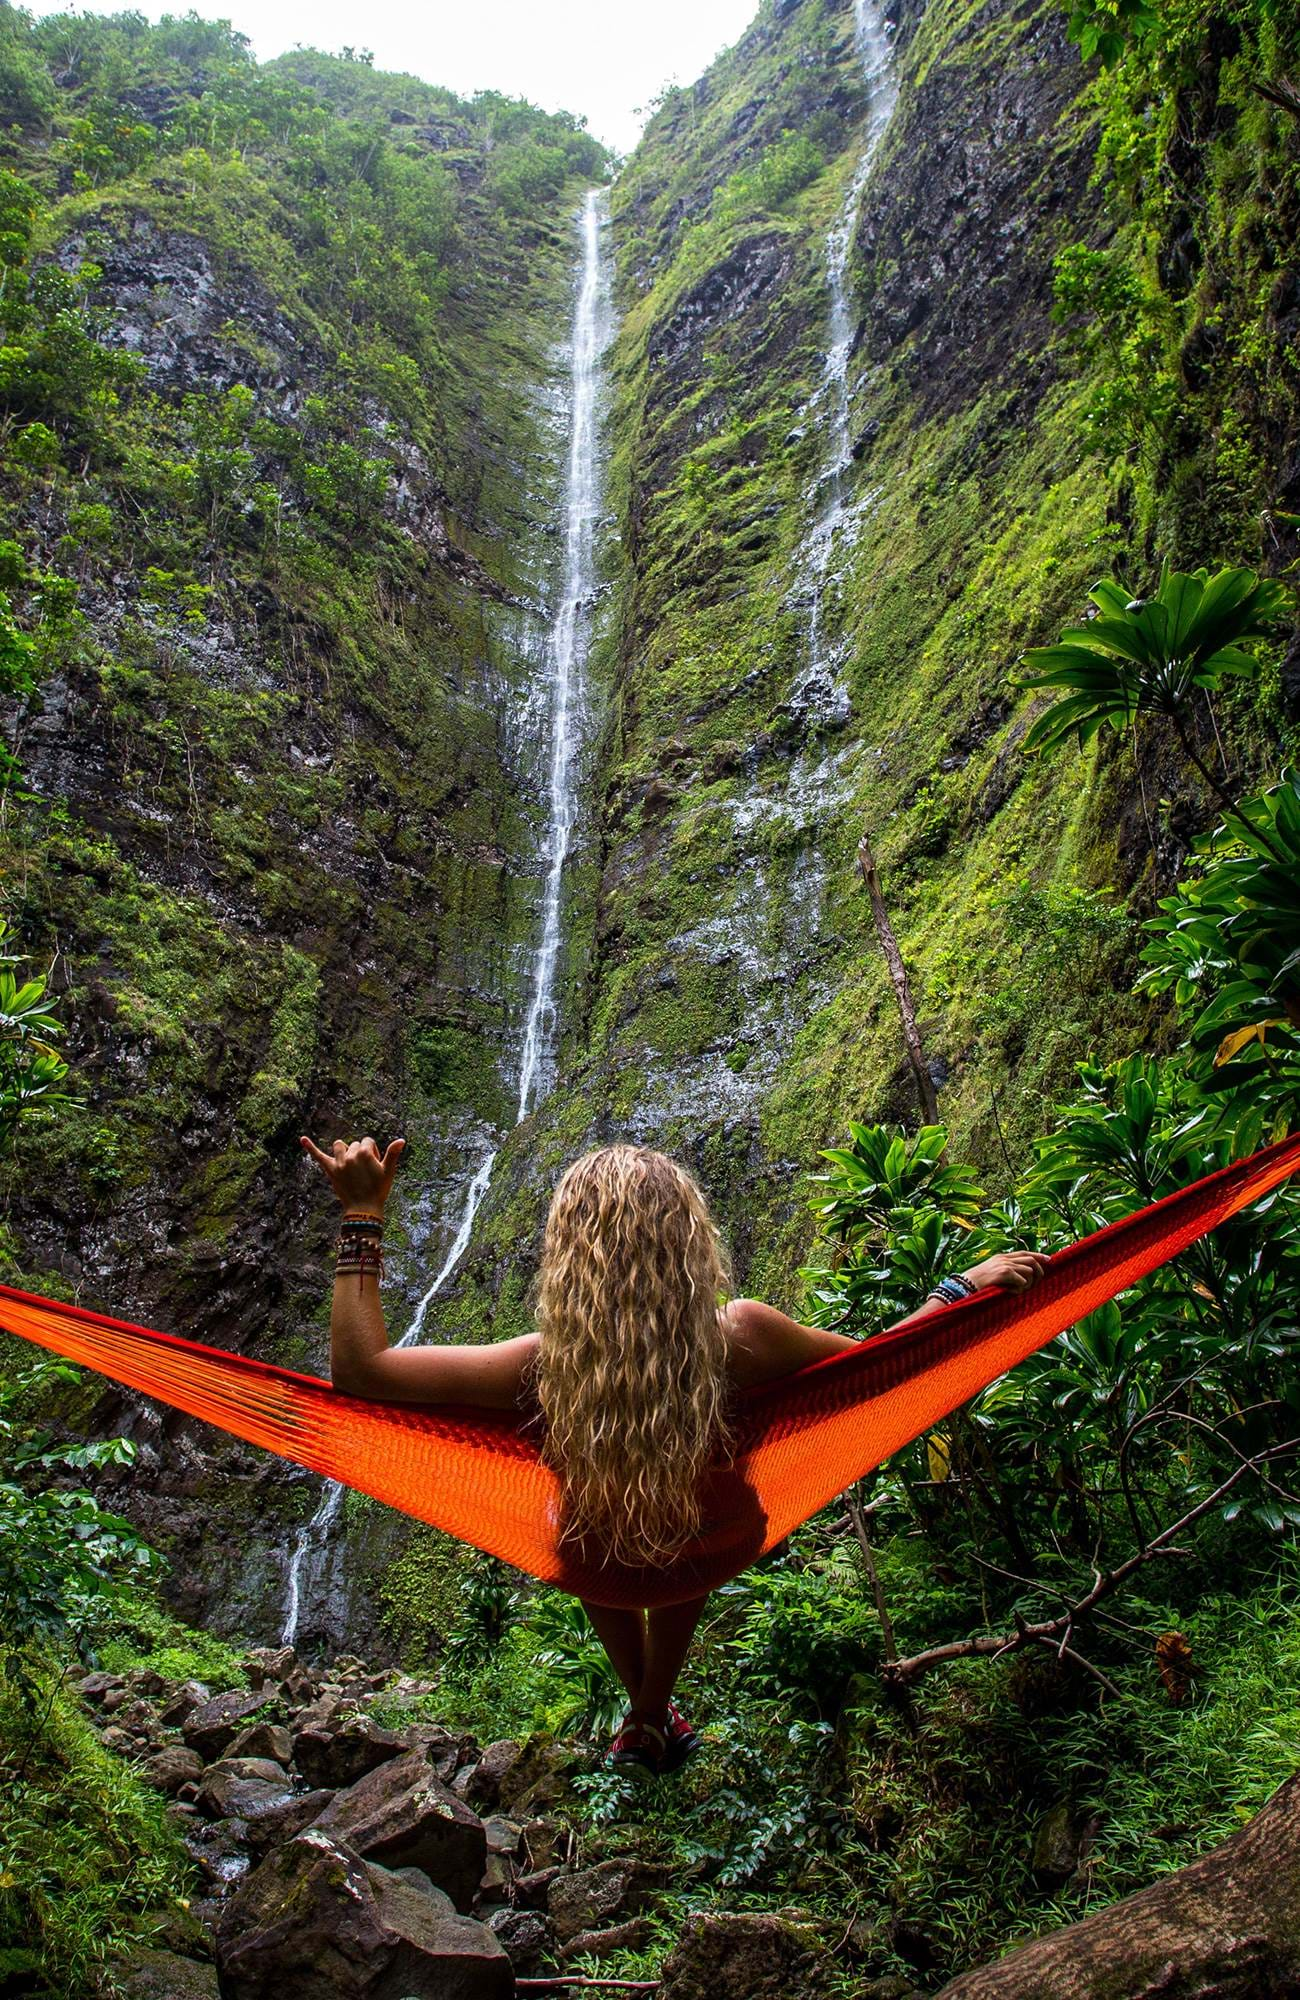 hawaii-girl-in-hammock-at-waterfall-sidebar